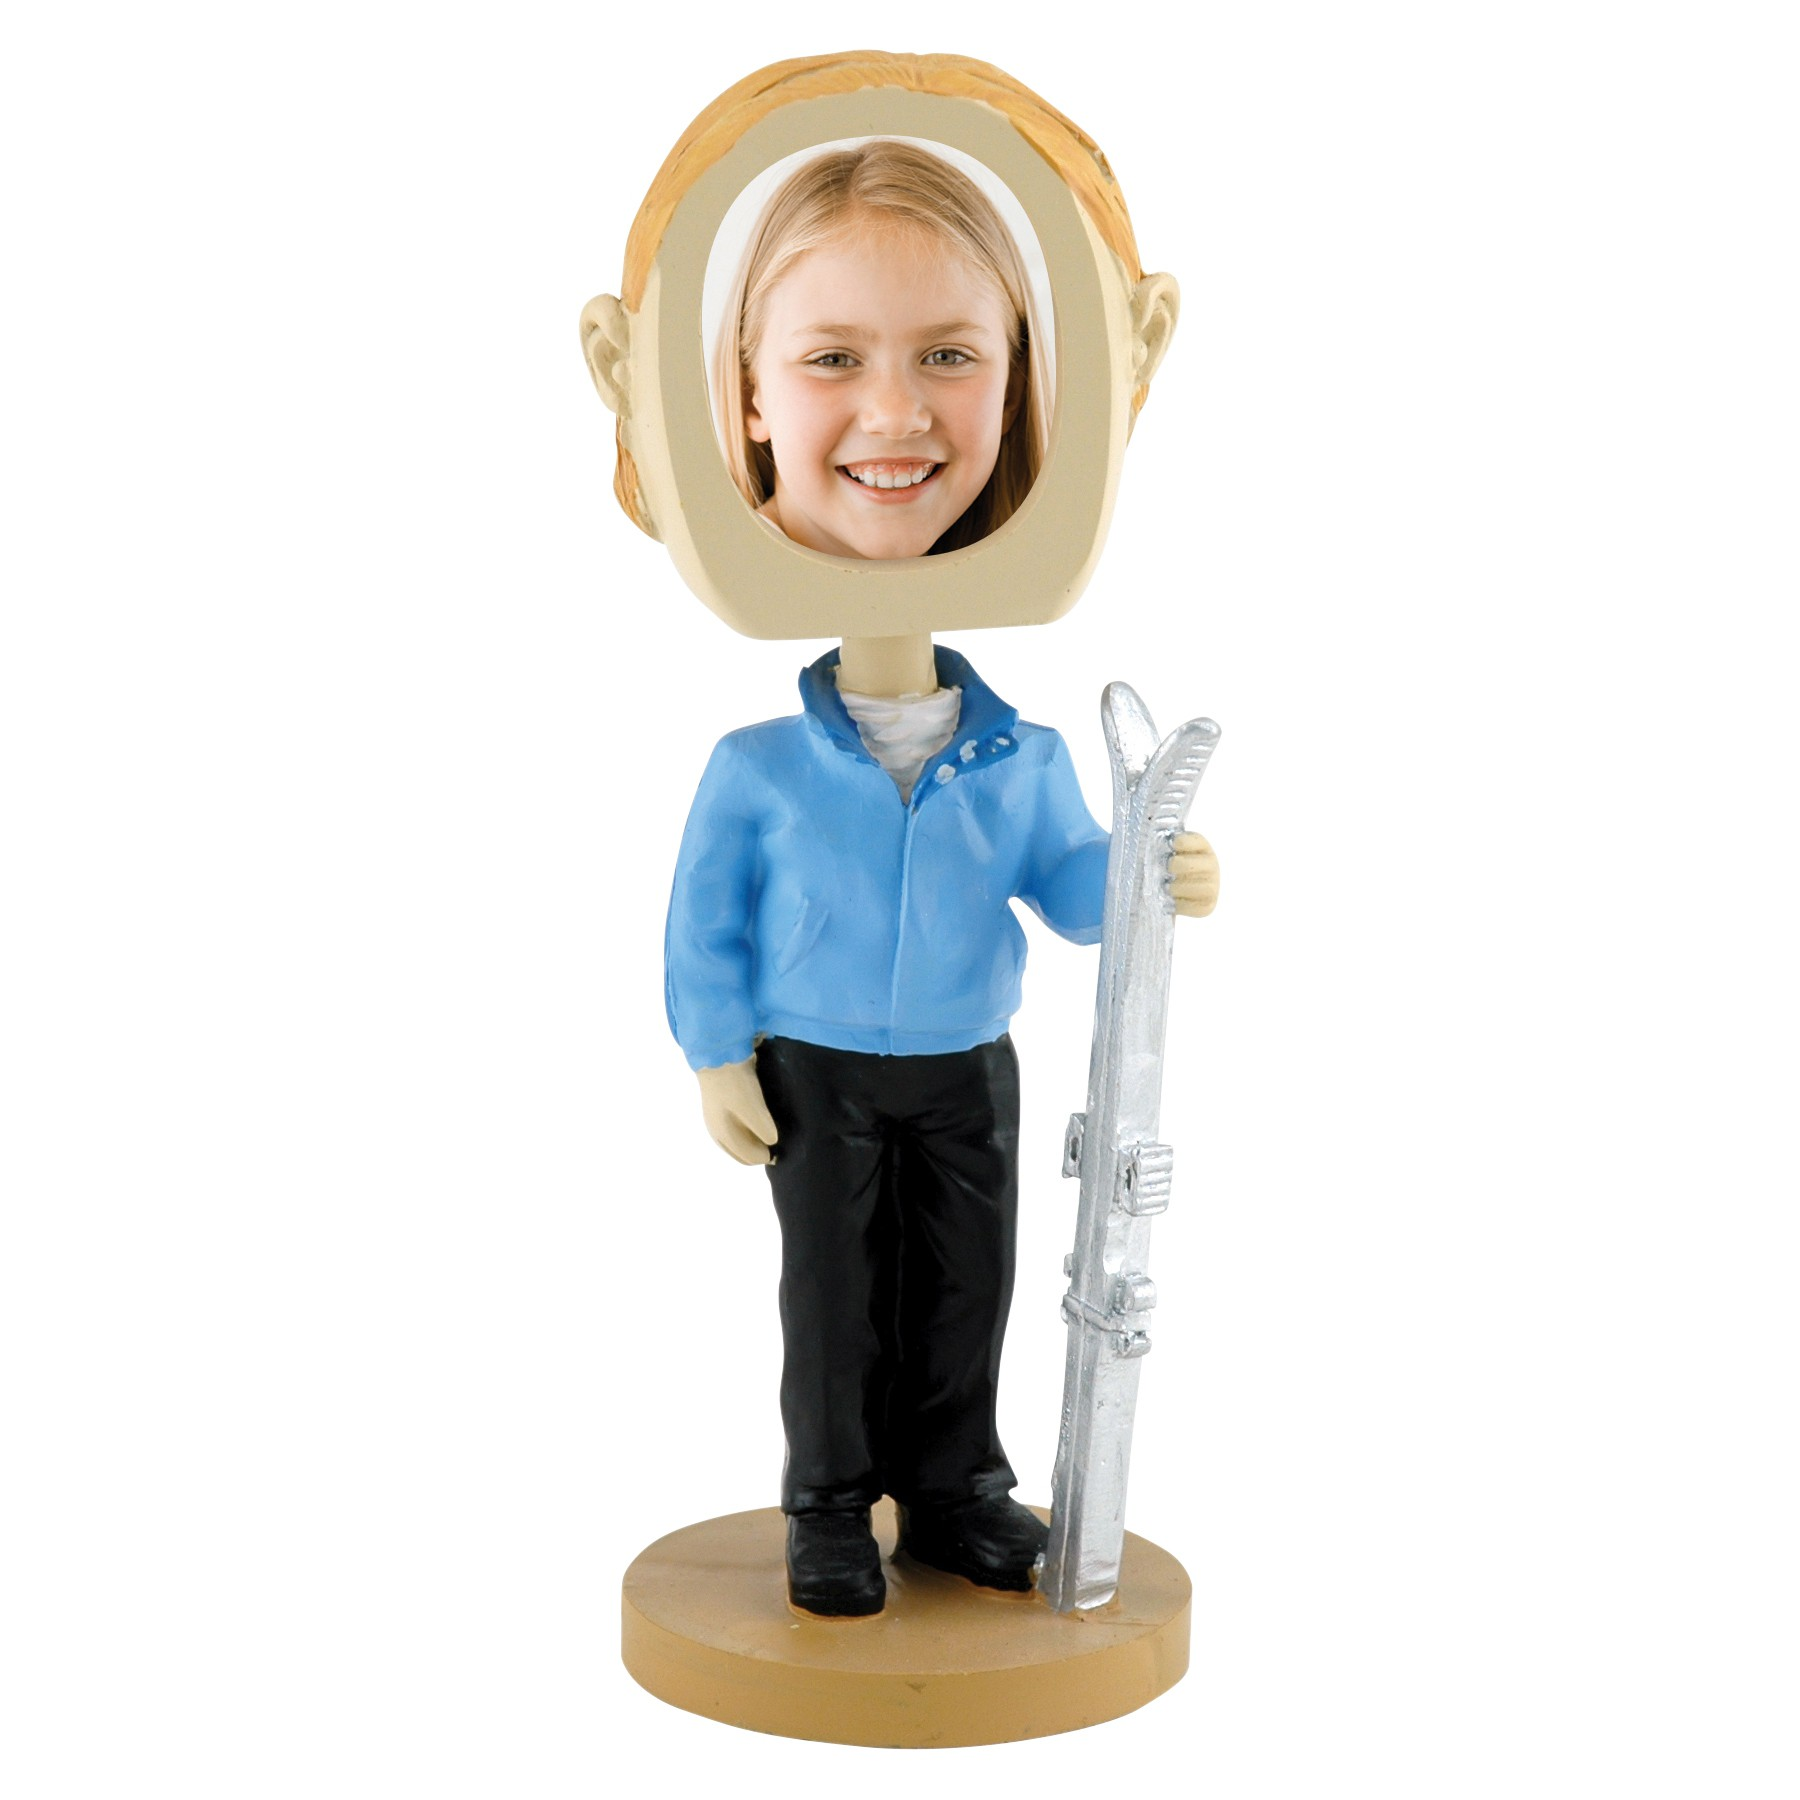 wholesale skier photo bobble head for professional photographers